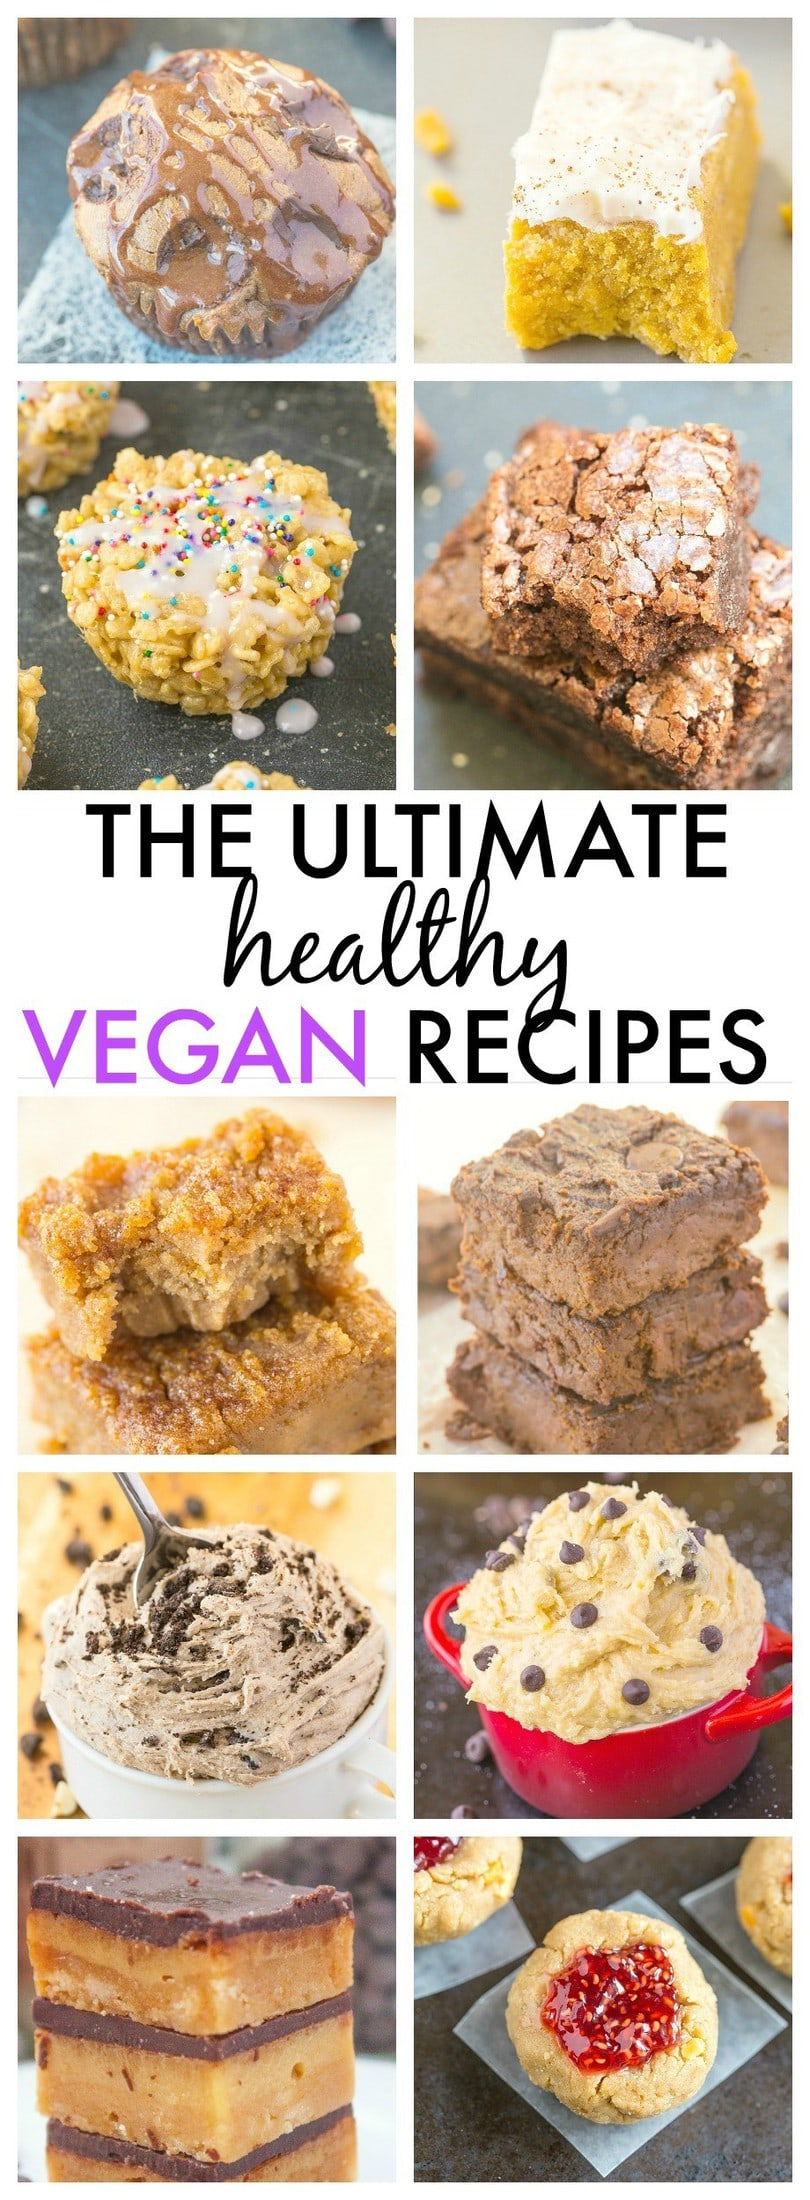 The Ultimate HEALTHY Vegan recipes which taste anything but- Quick, easy and perfect to cure the sweet tooth! {gluten free, paleo, sugar free options}